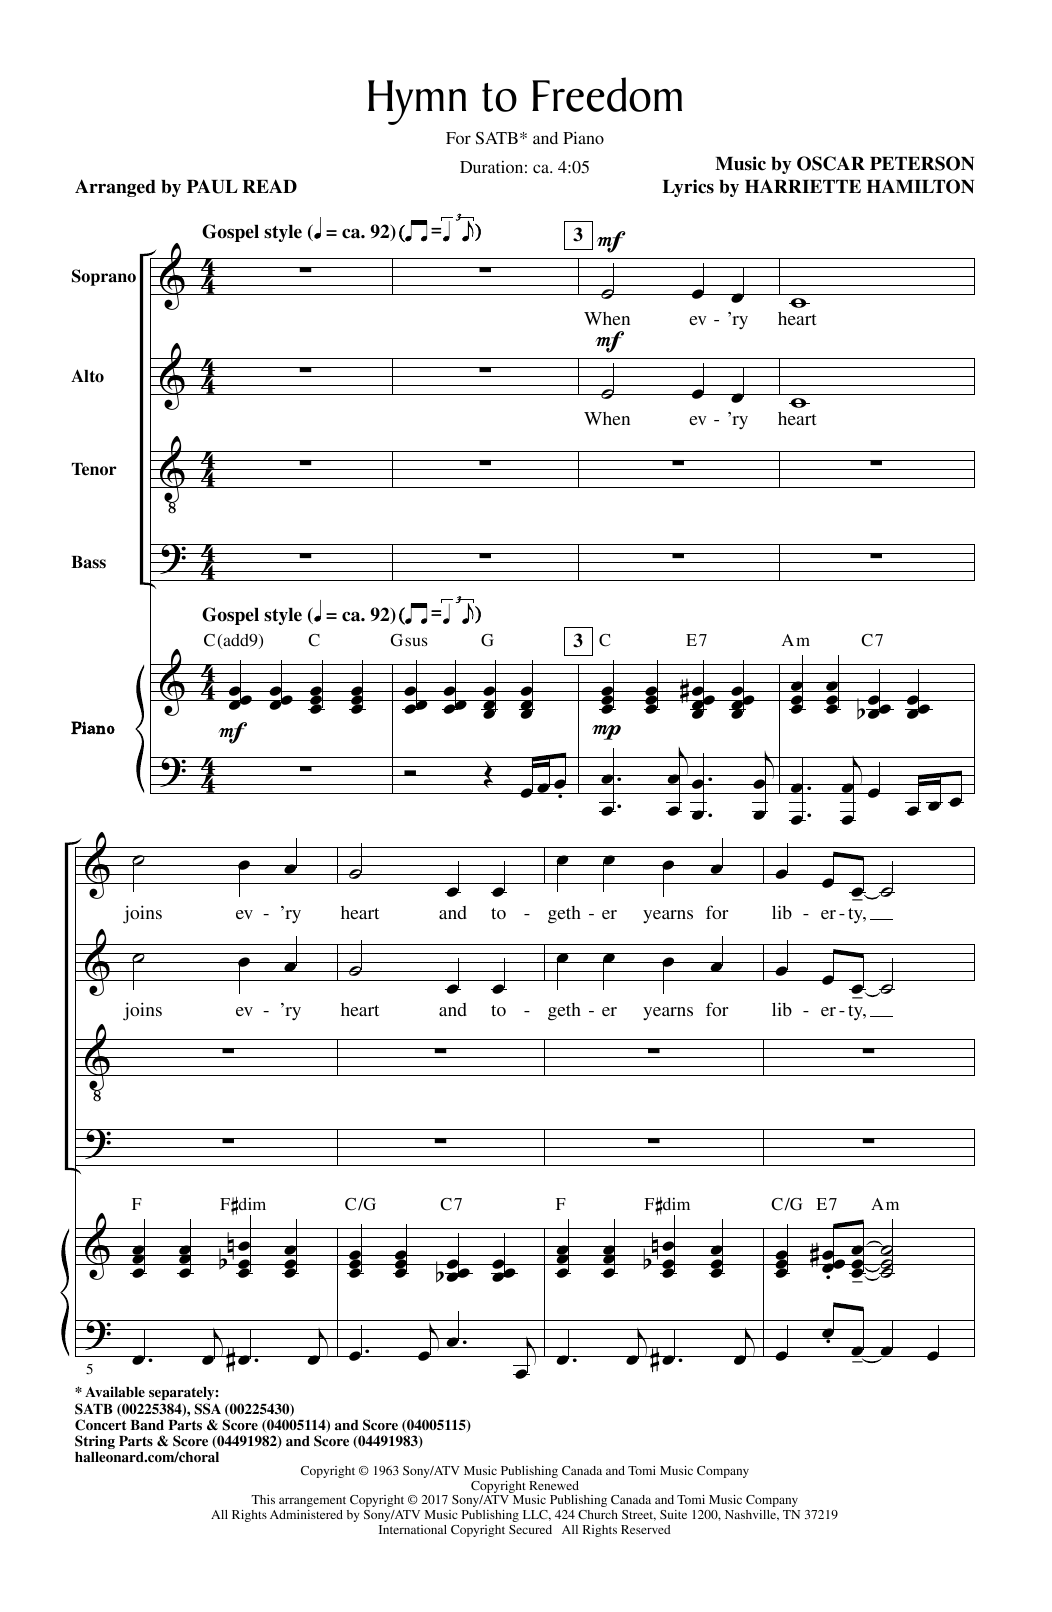 Seppo Hovi Hymn To Freedom Sheet Music Notes Chords Printable